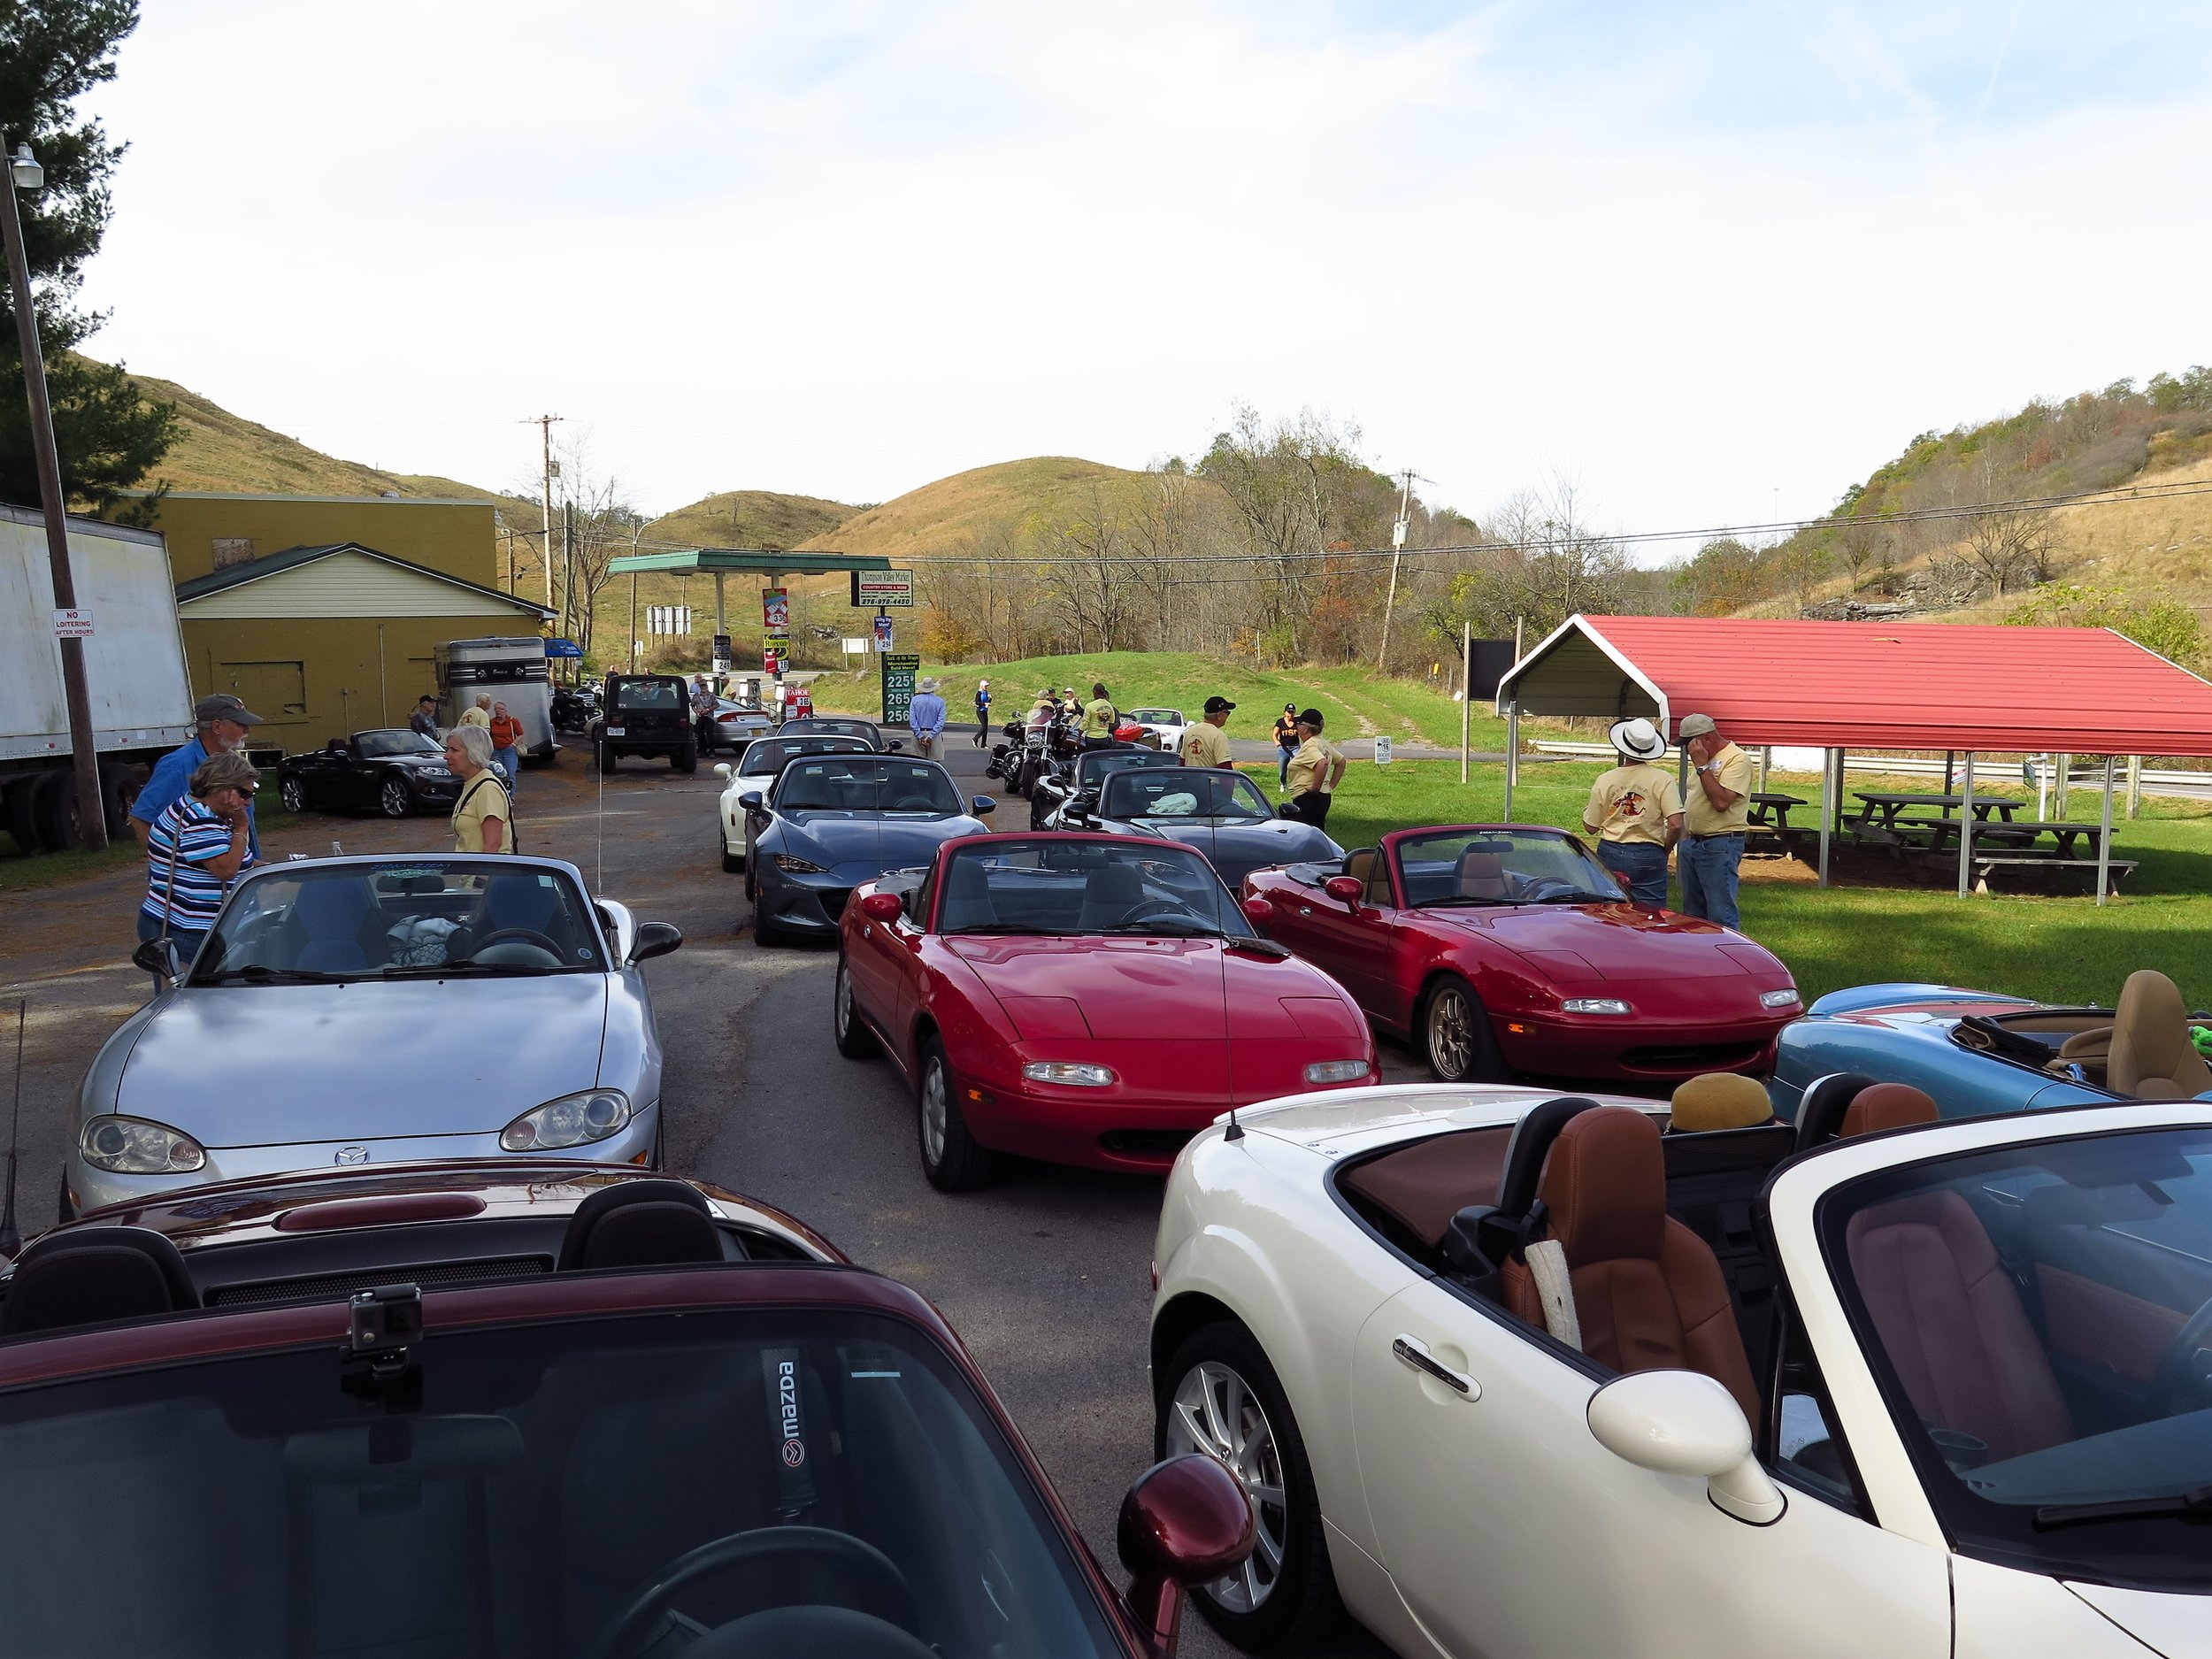 Thomas Valley Market- Route 16  VA- A great place to start or finish when riding The Back of the Dragon. Fill up the tank, grab some snacks and even hats and T-shirts.